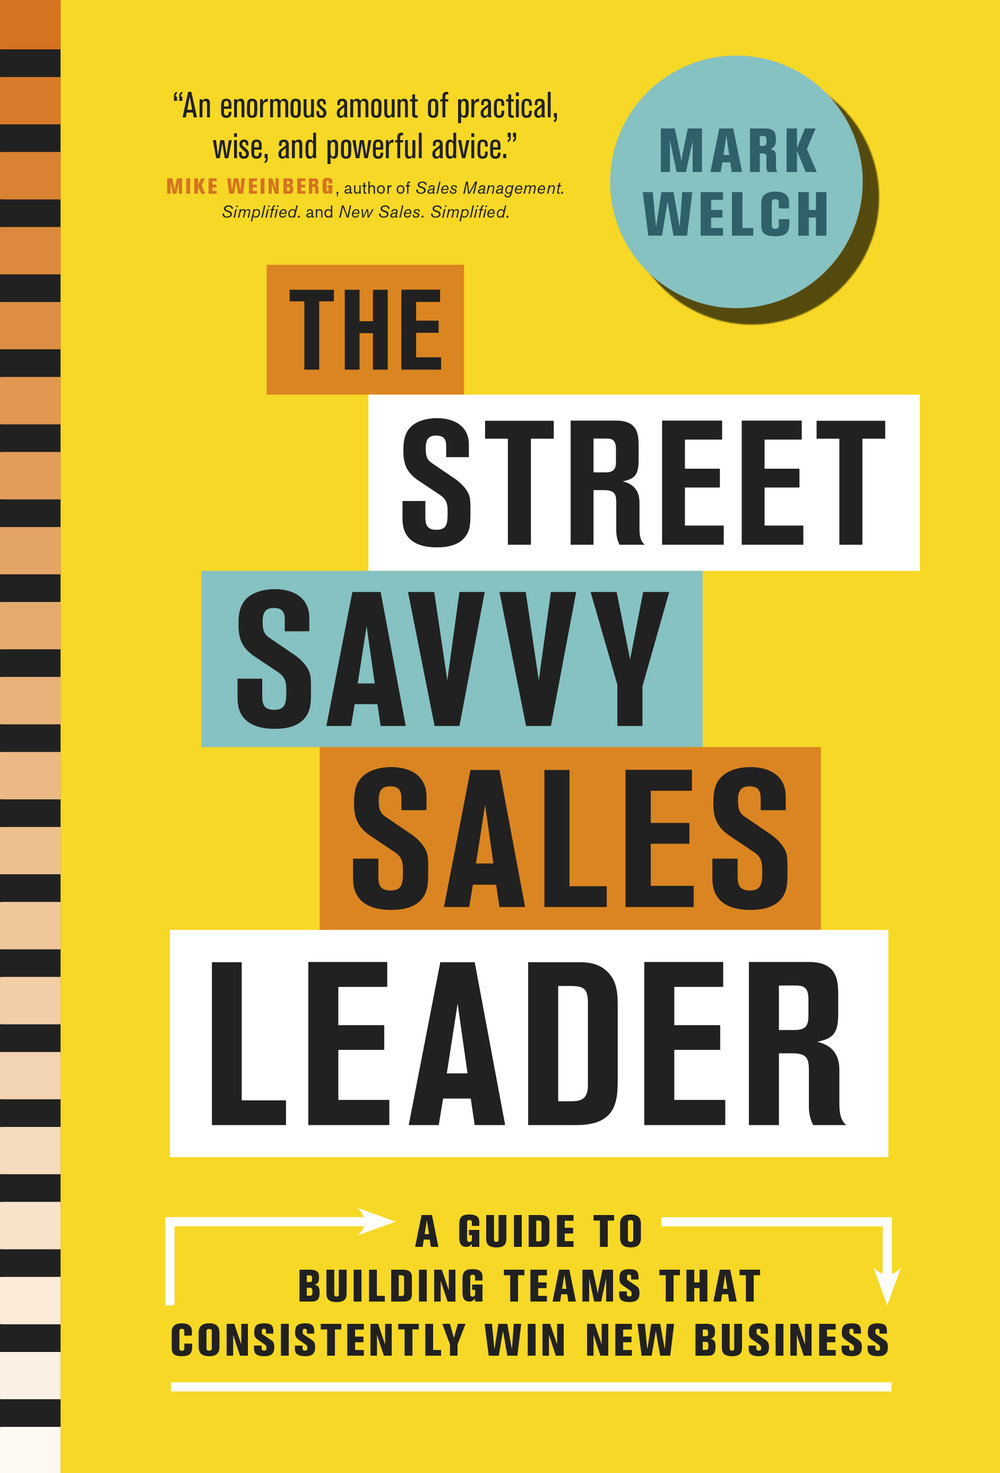 Book Cover of The Street Savvy Sales Leader